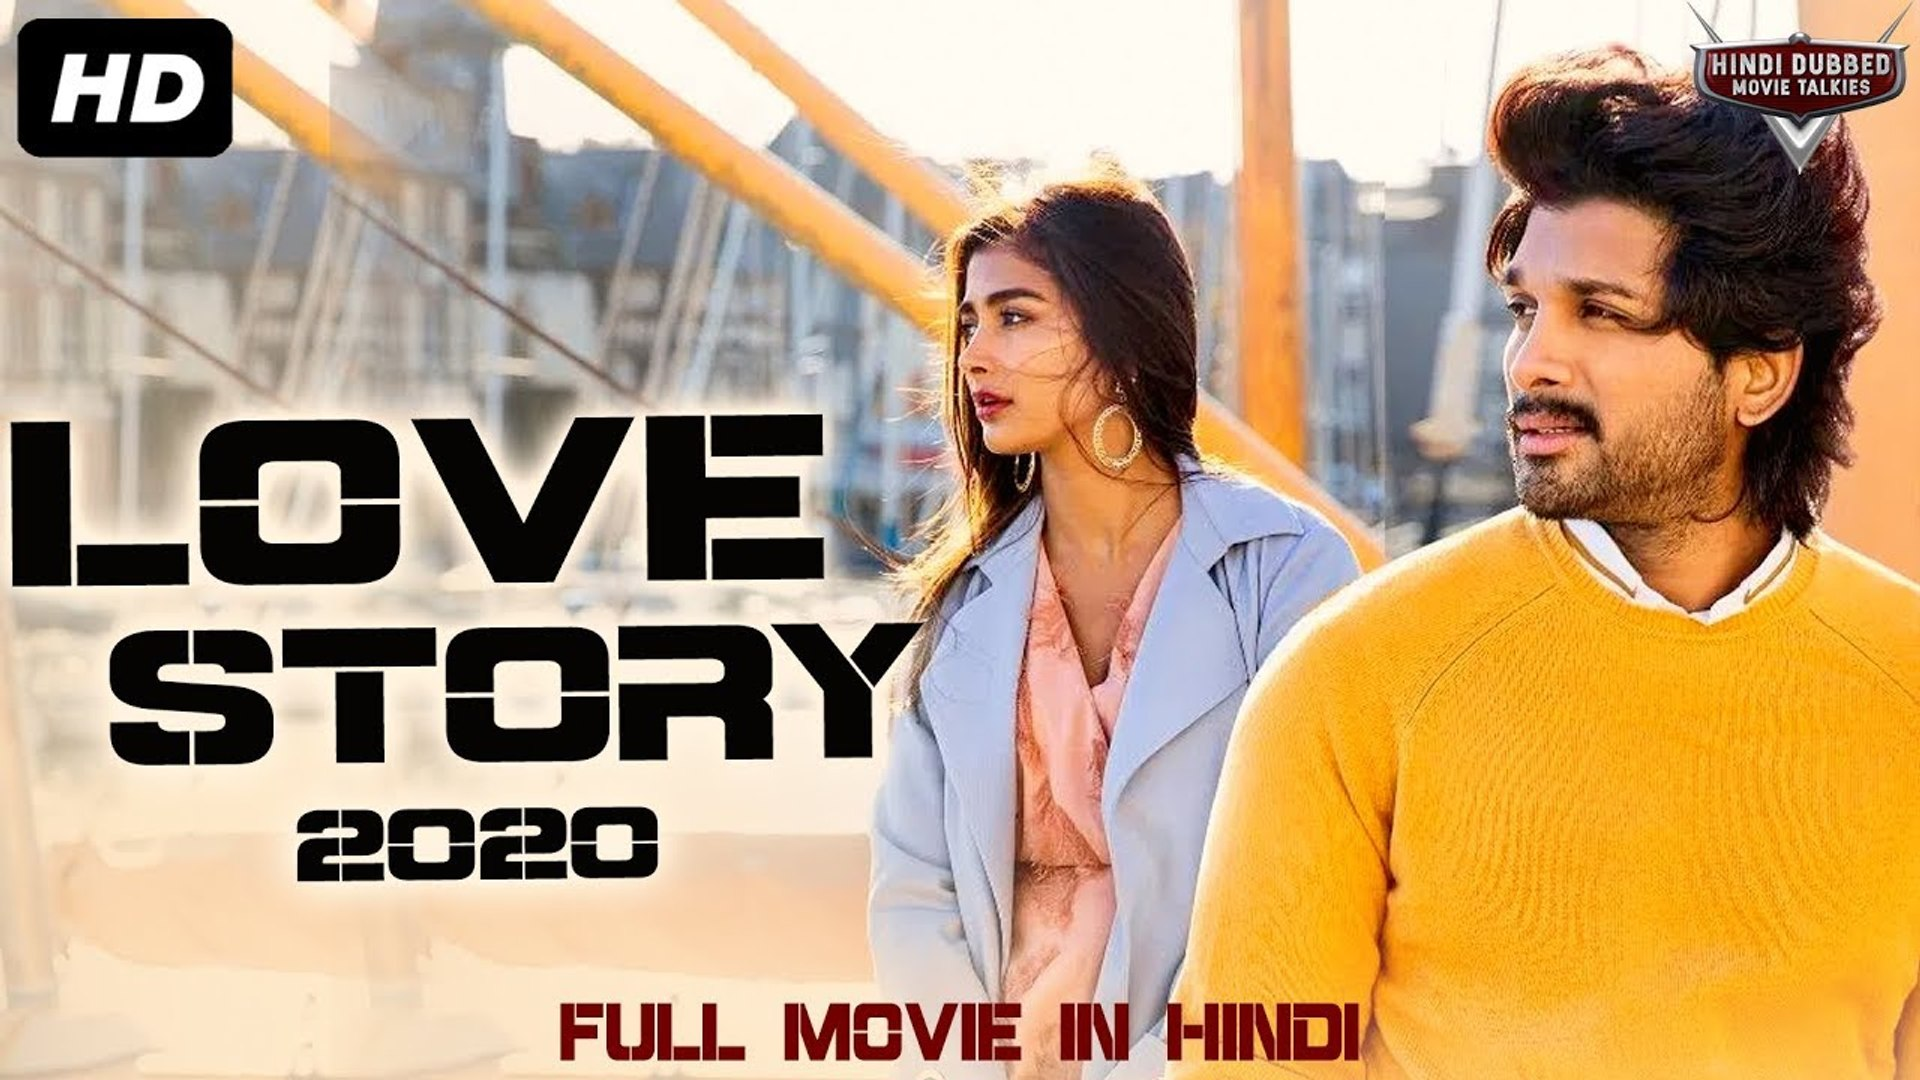 Love Story 2020 New Released Video Dailymotion